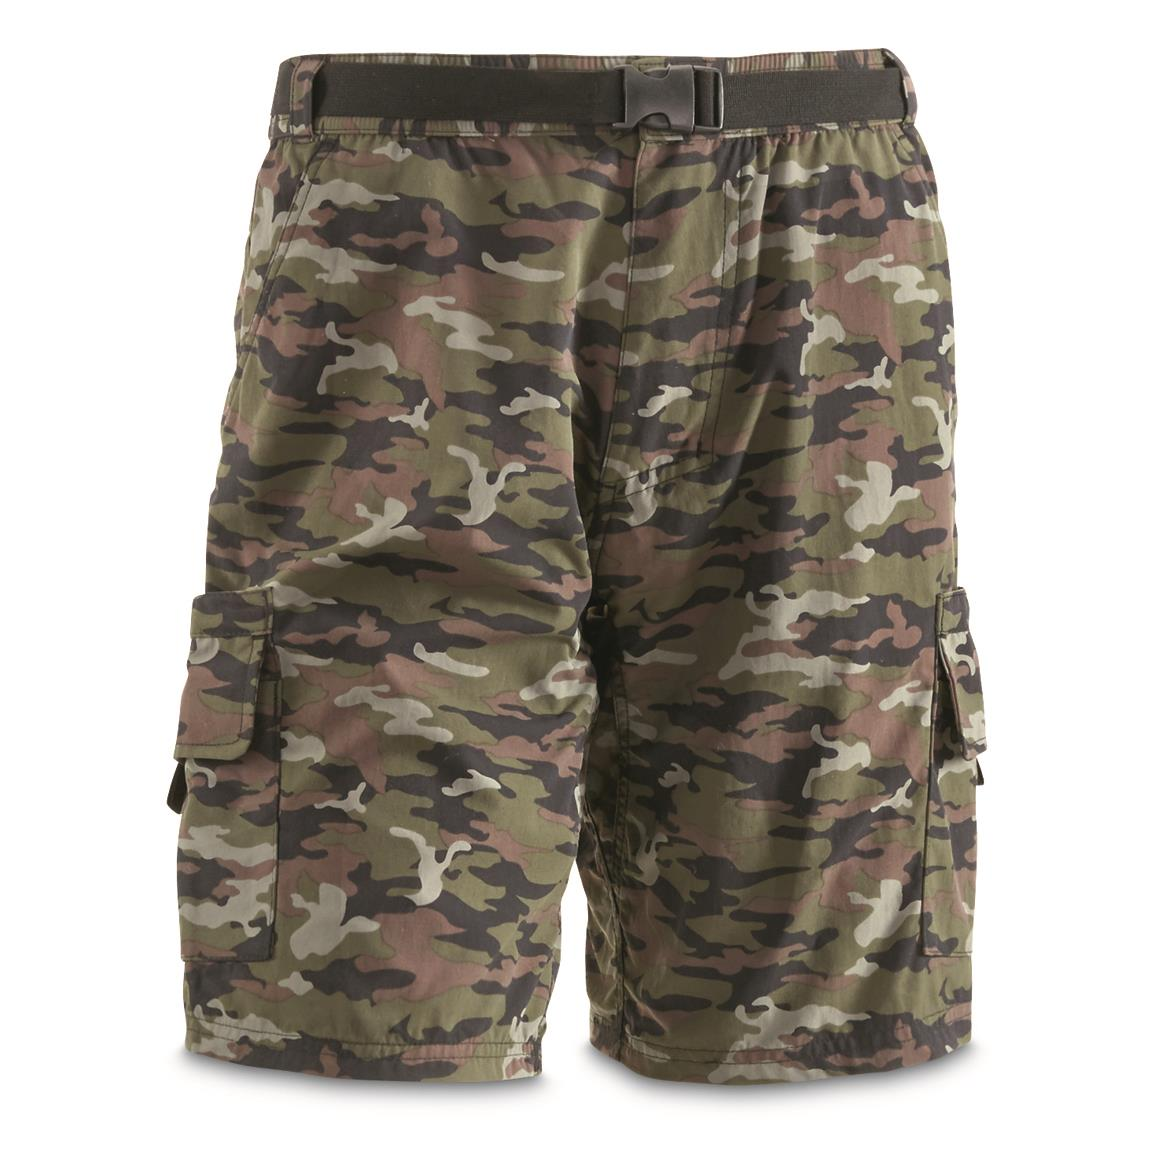 "Guide Gear Men's Cargo River Shorts, 10"" Inseam, Camo"